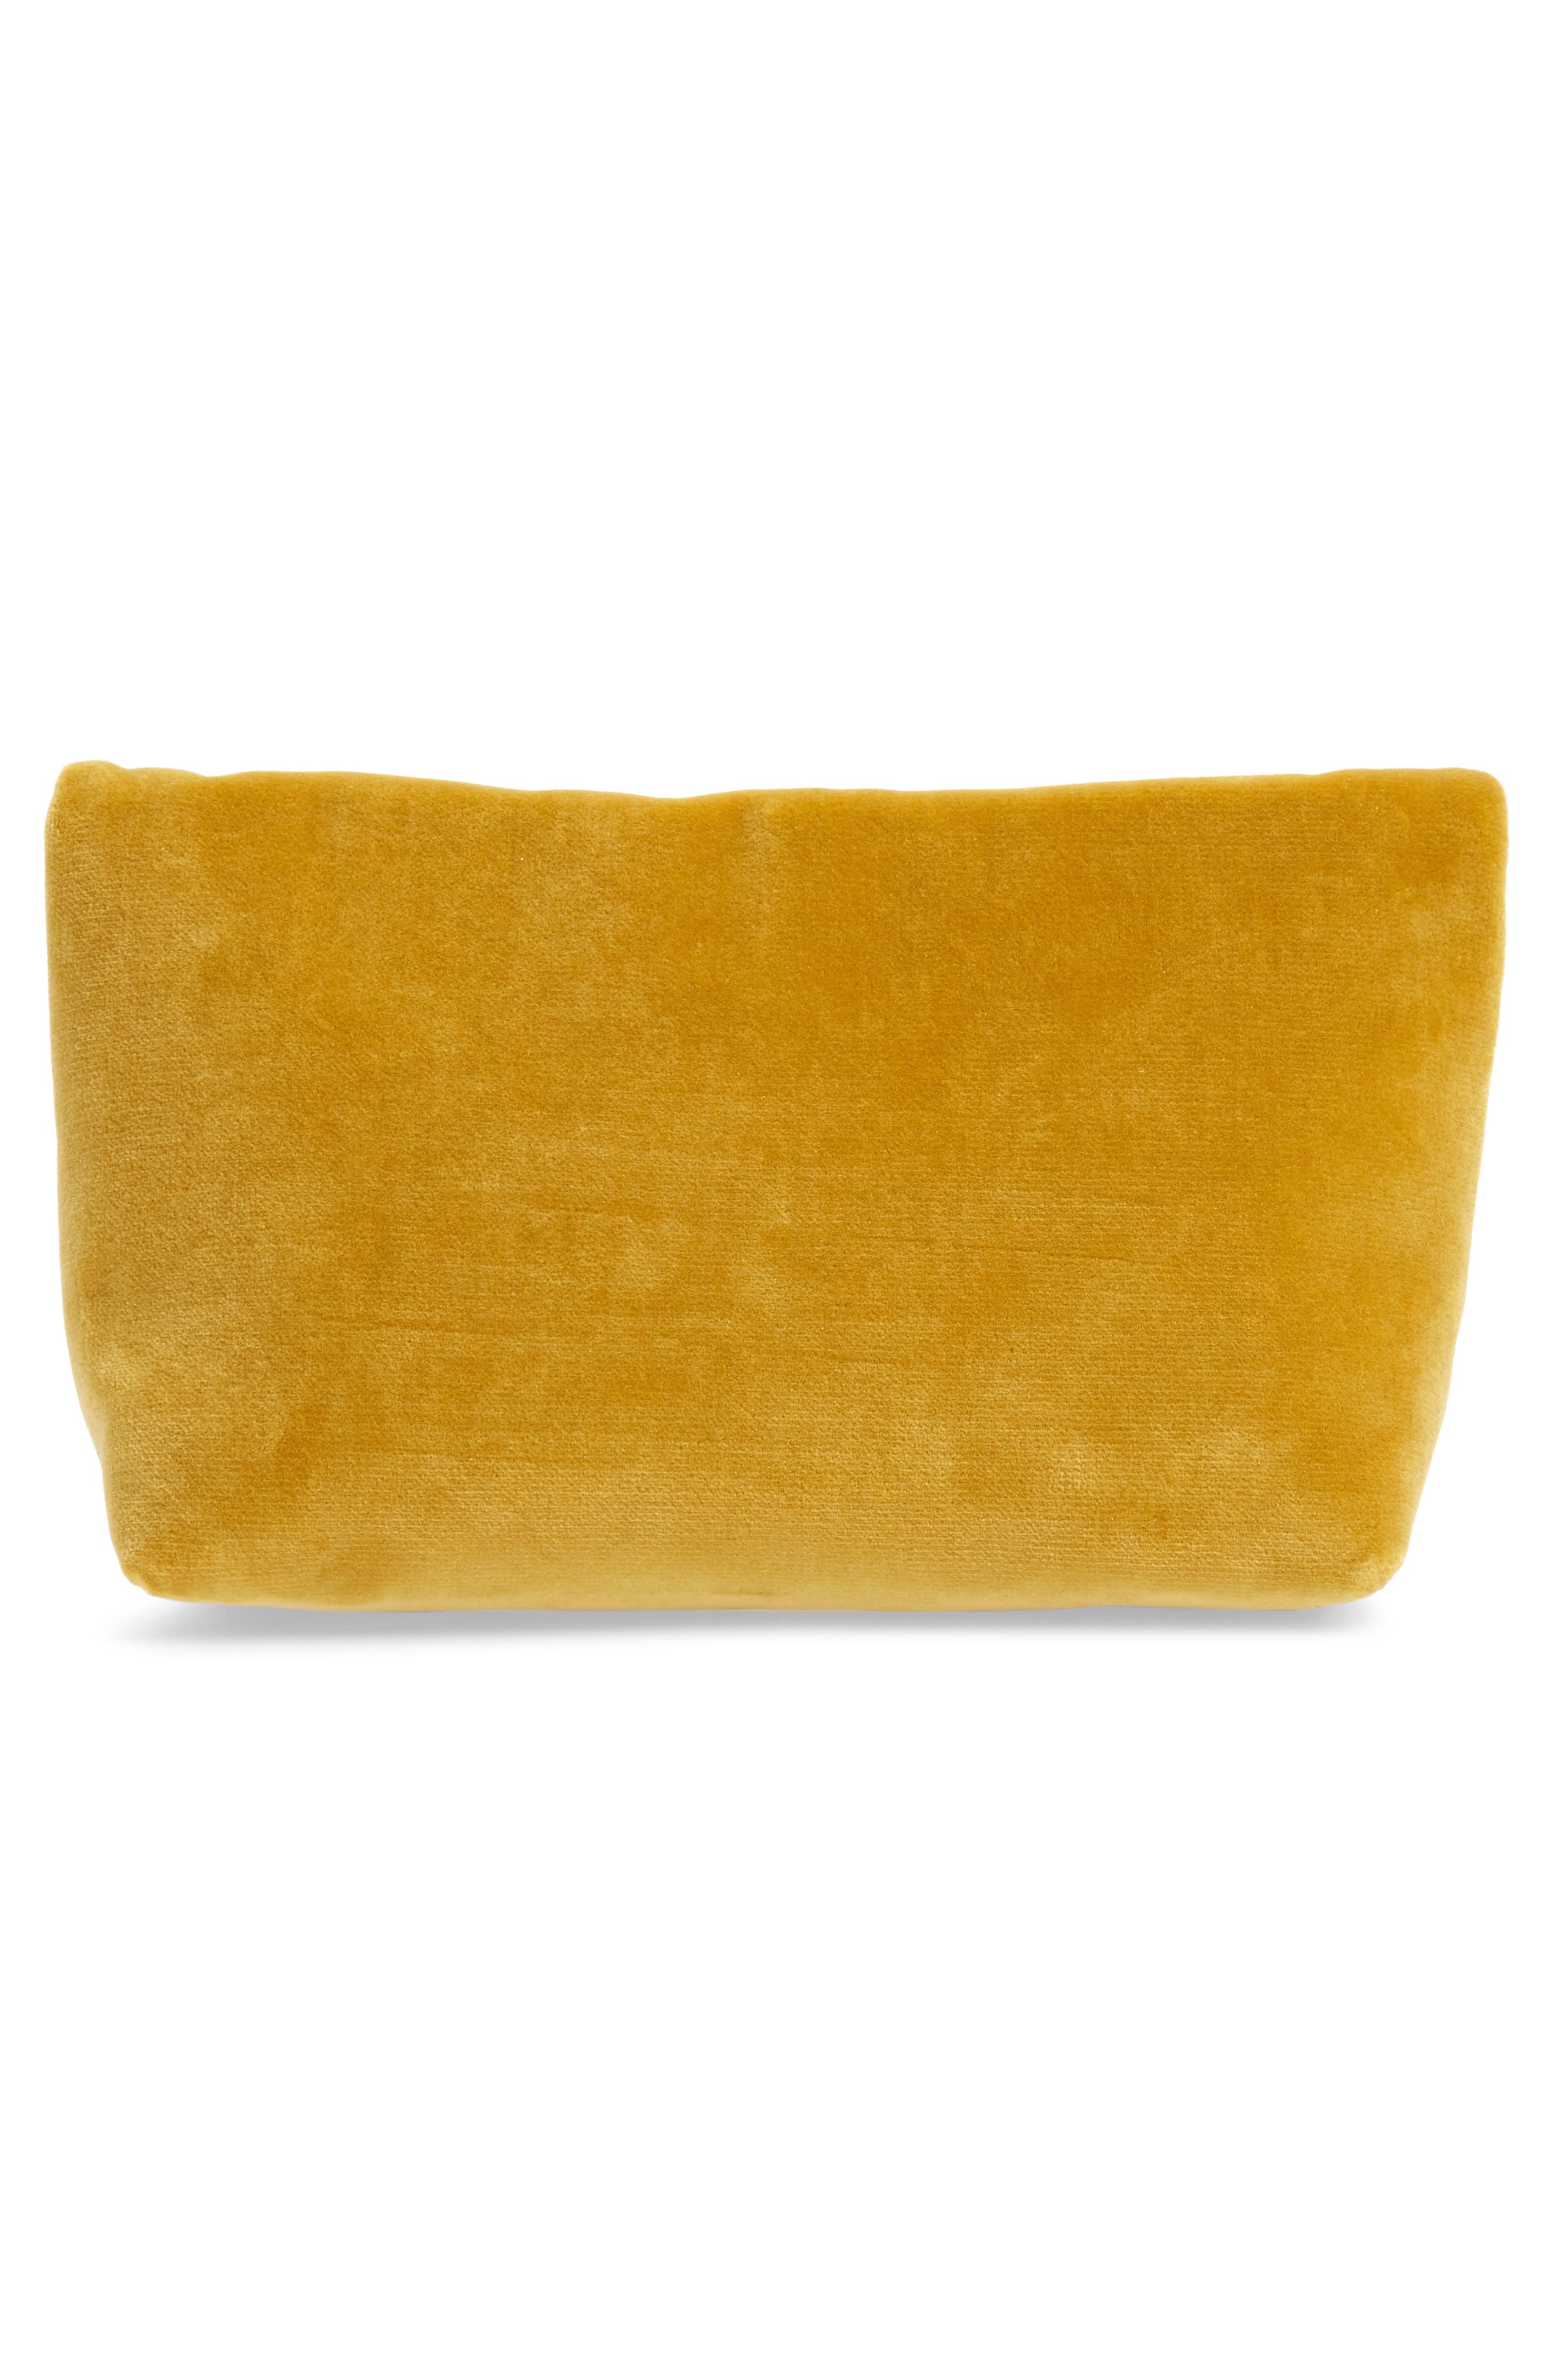 Small Safety Pin Clutch,                             Alternate thumbnail 3, color,                             LARCH YELLOW